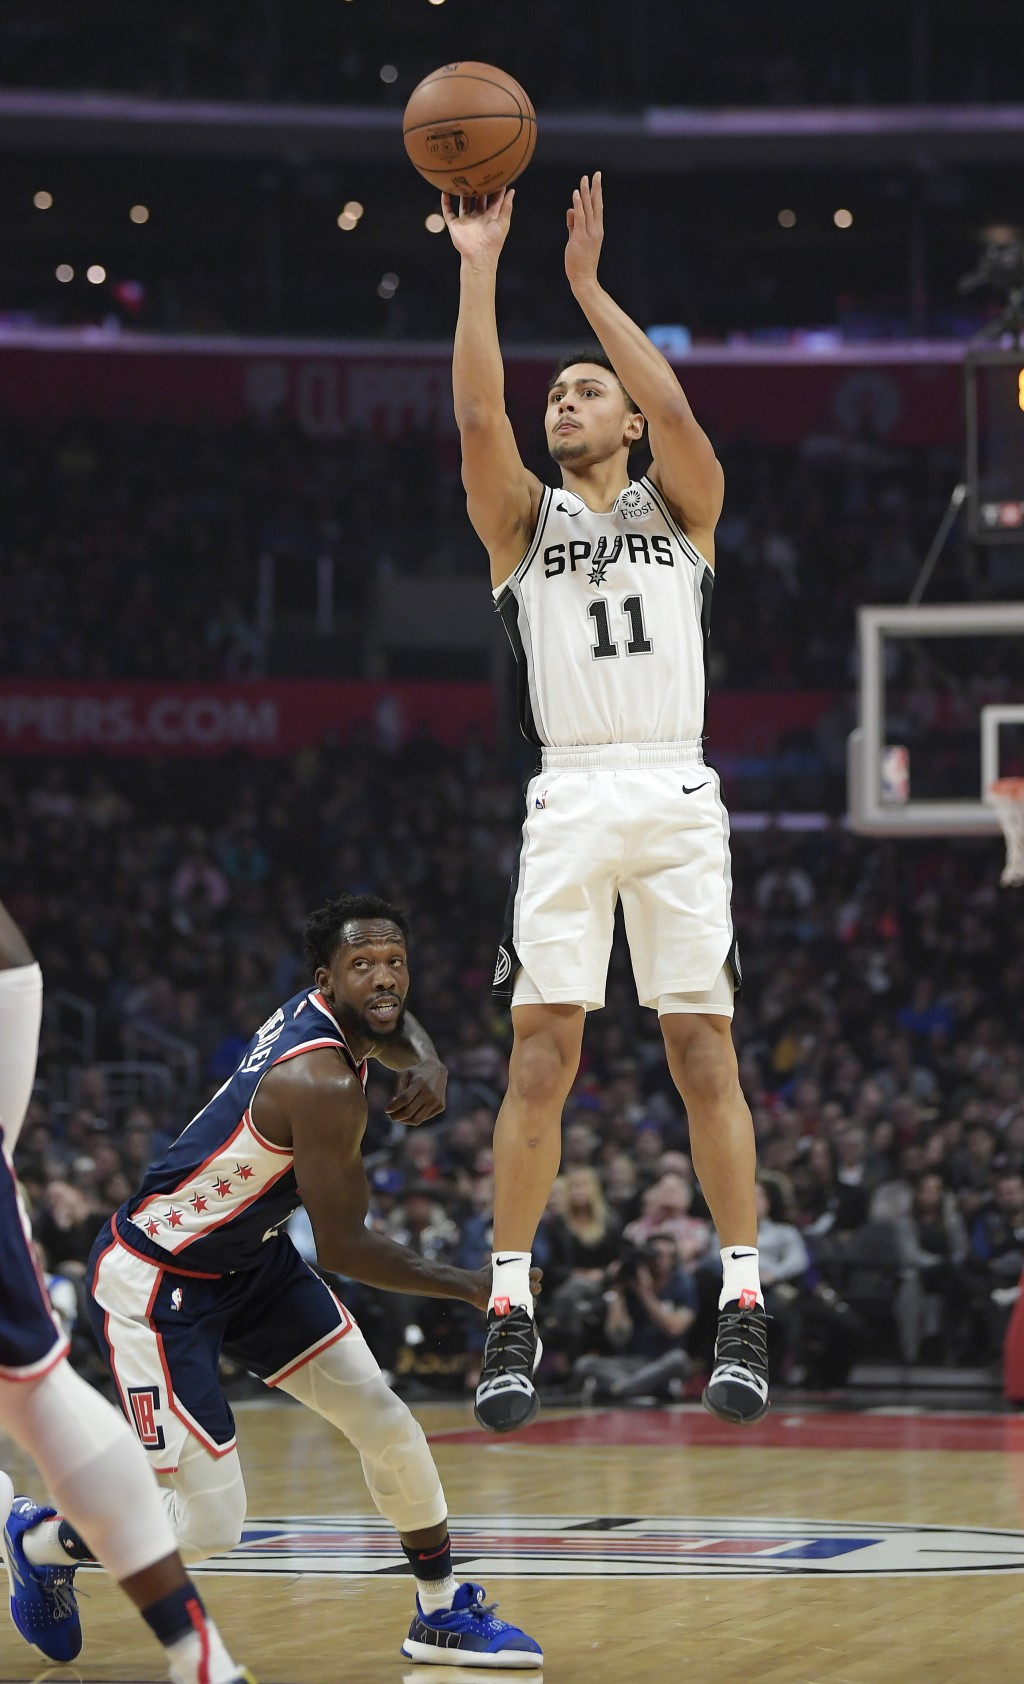 San Antonio Spurs guard Bryn Forbes shoots as Los Angeles Clippers guard Patrick Beverley defends during the first half of an NBA basketball game Satu...